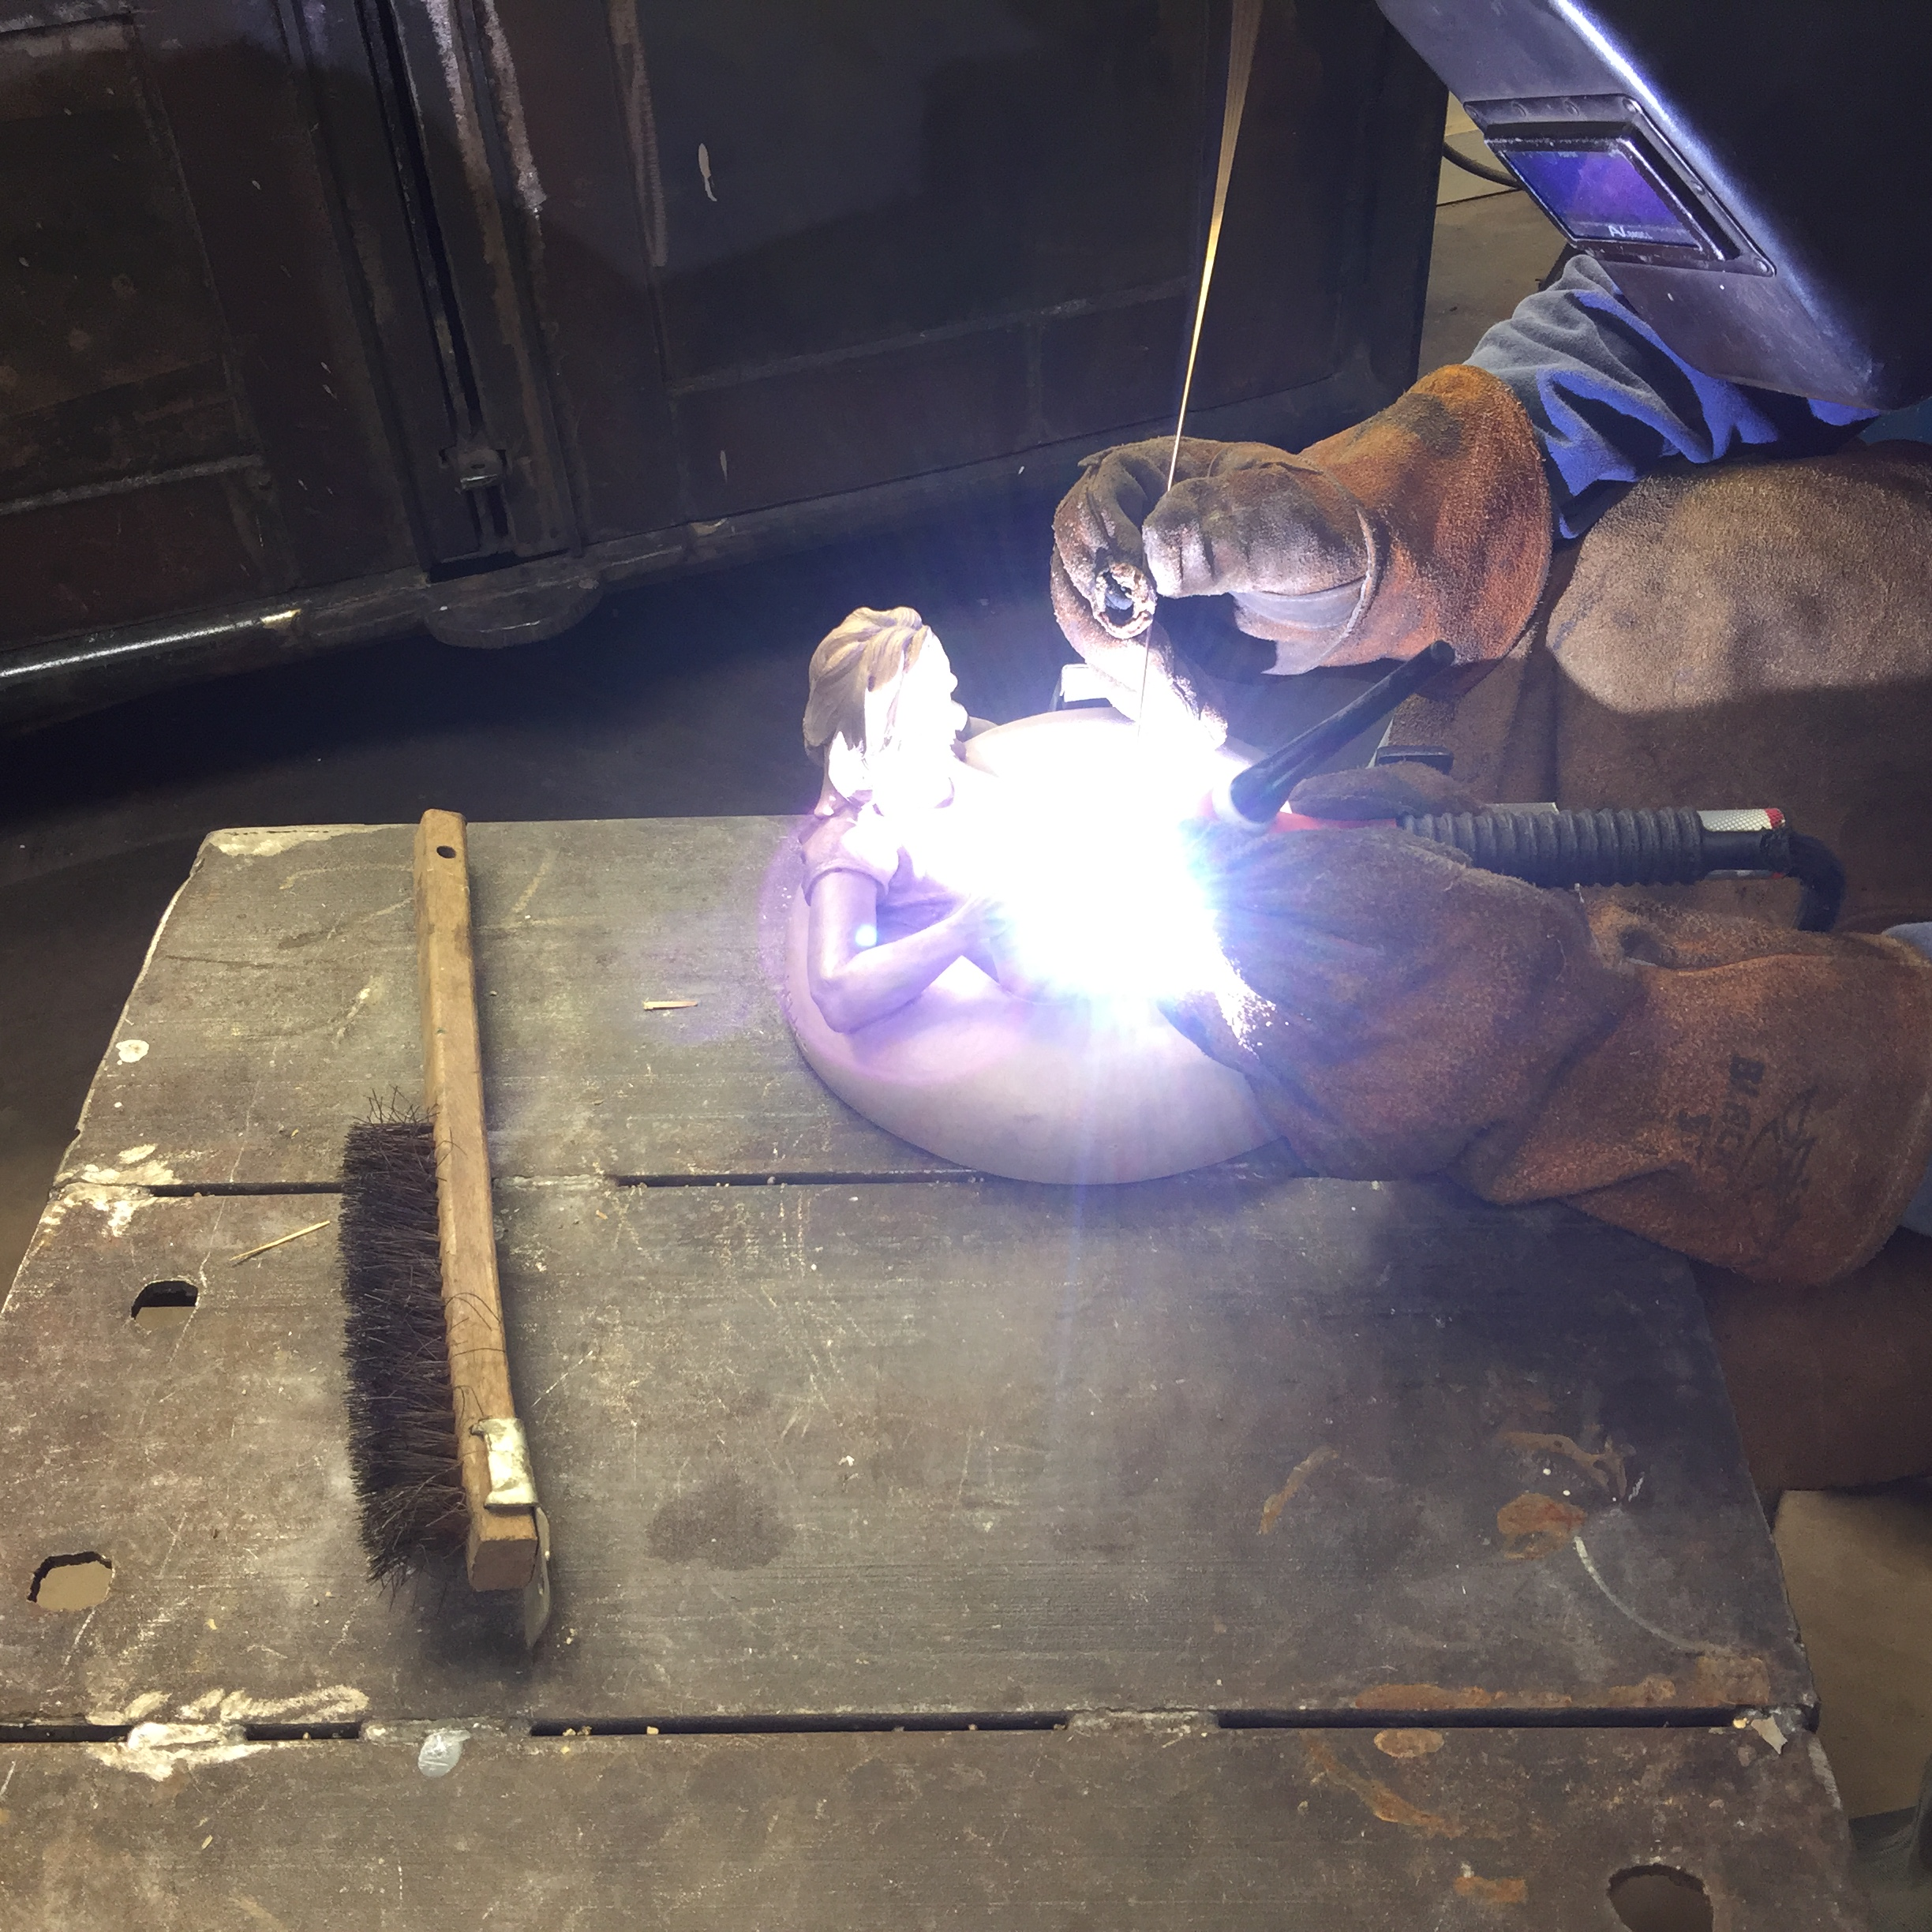 Tig welding damaged areas with bronze filler rod.